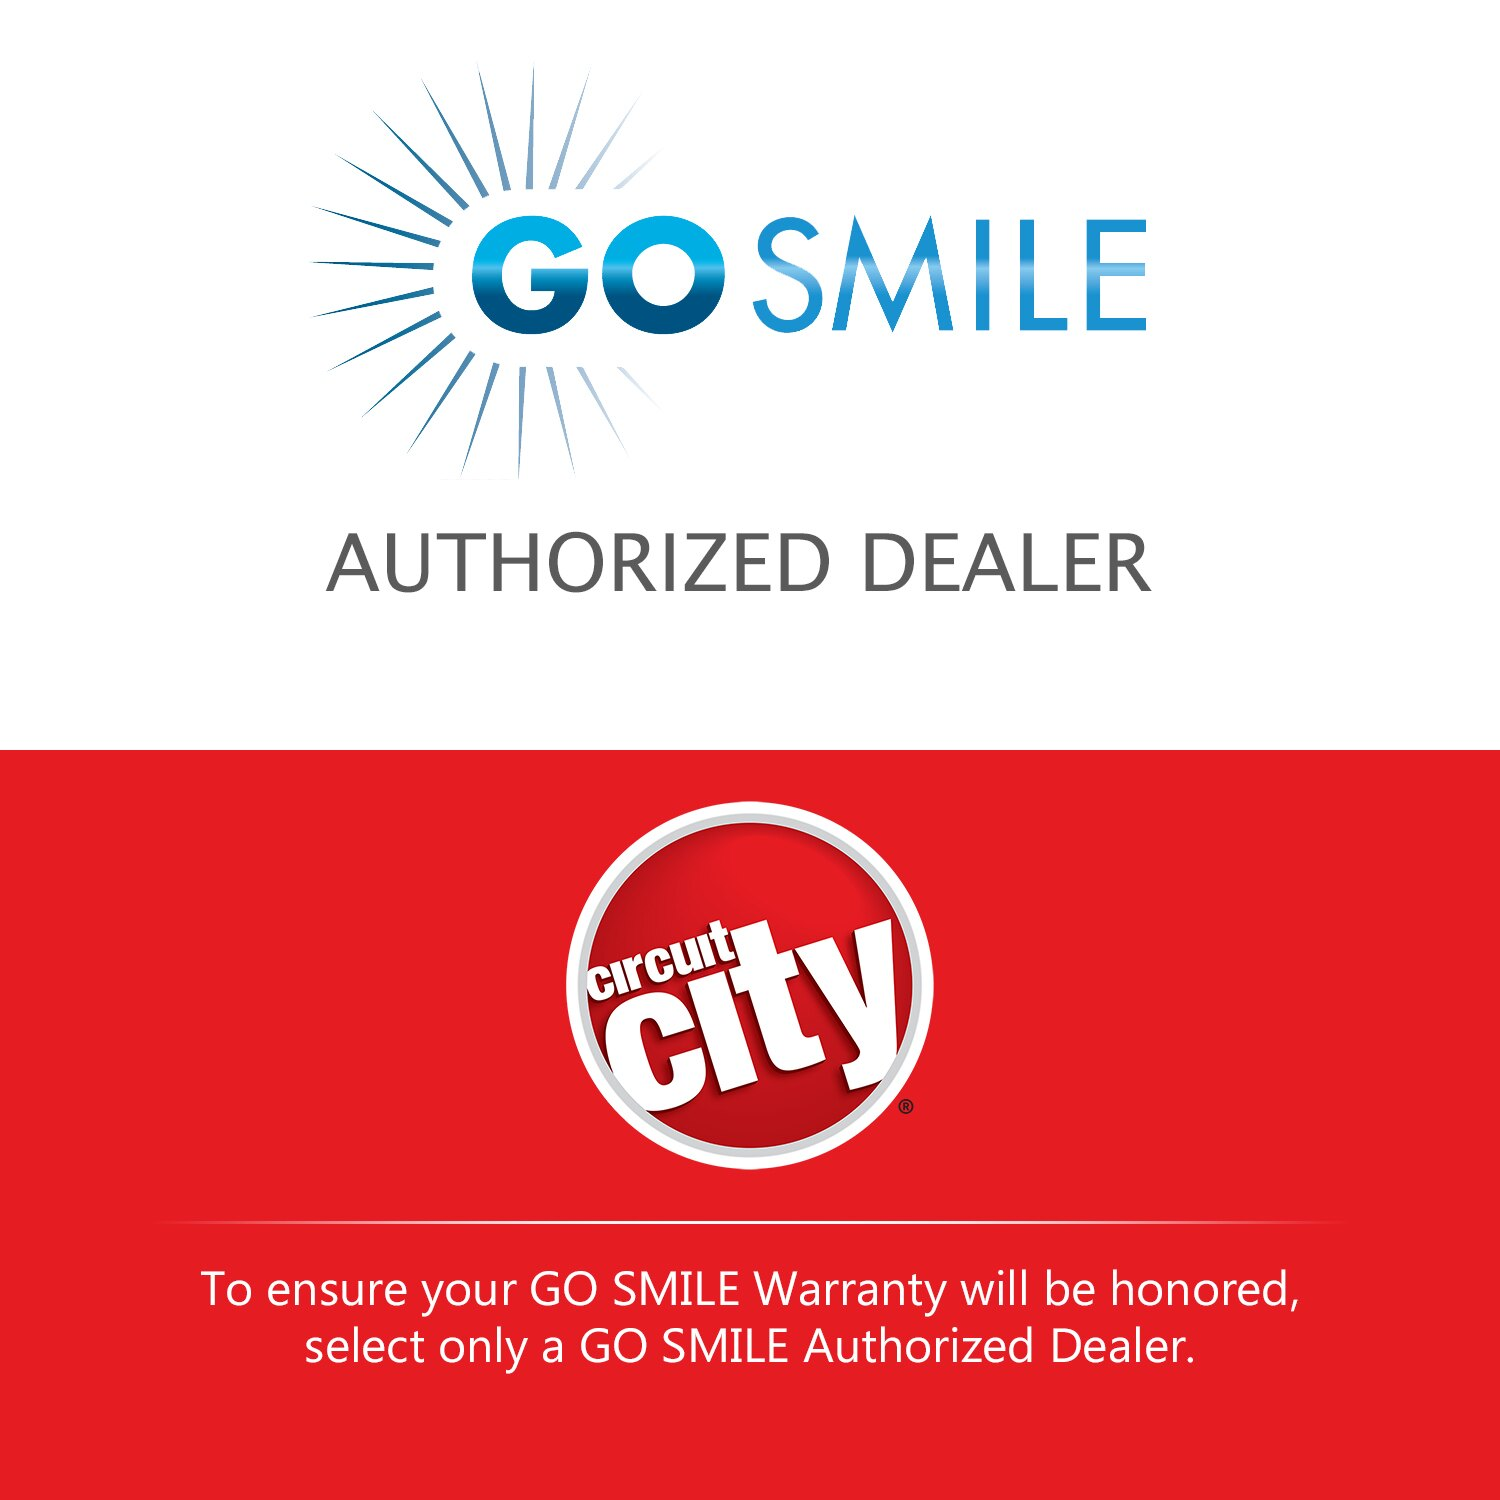 Circuit City Go Smile At Home Teeth Whitening Kit Uv Sonic Gt Ultrasonic Glossary Cleaner Schematic Diagram Toothbrush Dental Care System Silver